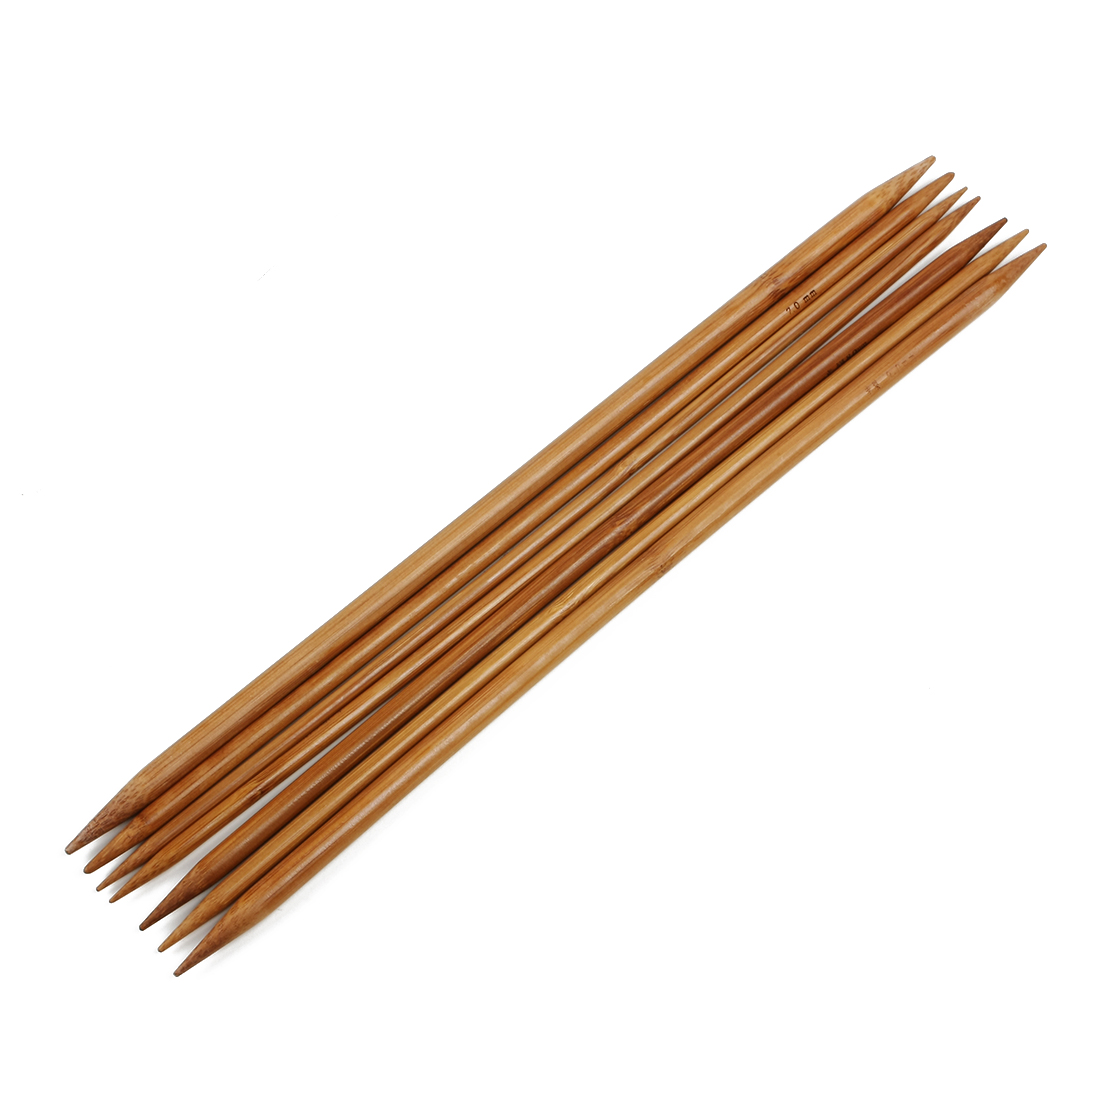 Double Pointed Straight Smooth Handmade Carbonized Bamboo Knitting Needles 35cm 9 Set Knitting Needles